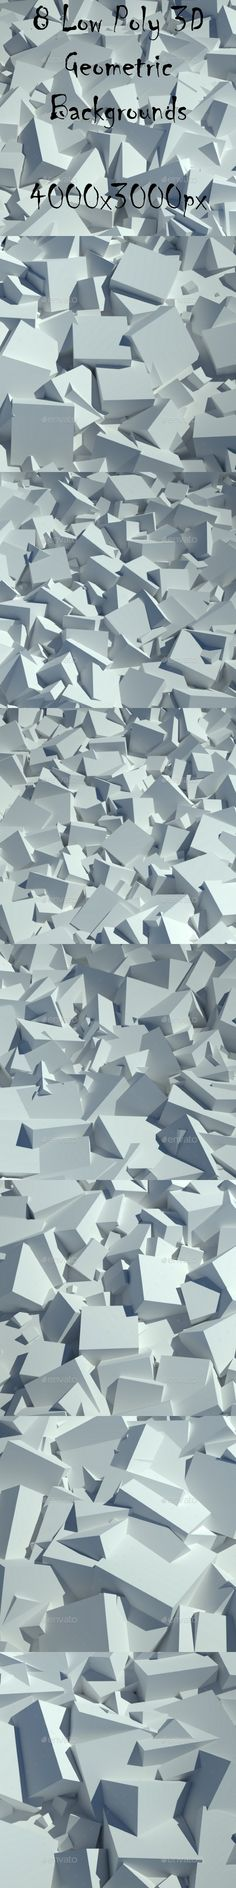 8 Low Poly 3D Geometric Backgrounds by Mumdzhiev The main file contains 8 low poly geometric background textures. No fonts are used in items. Images are saved as jpeg. Descript